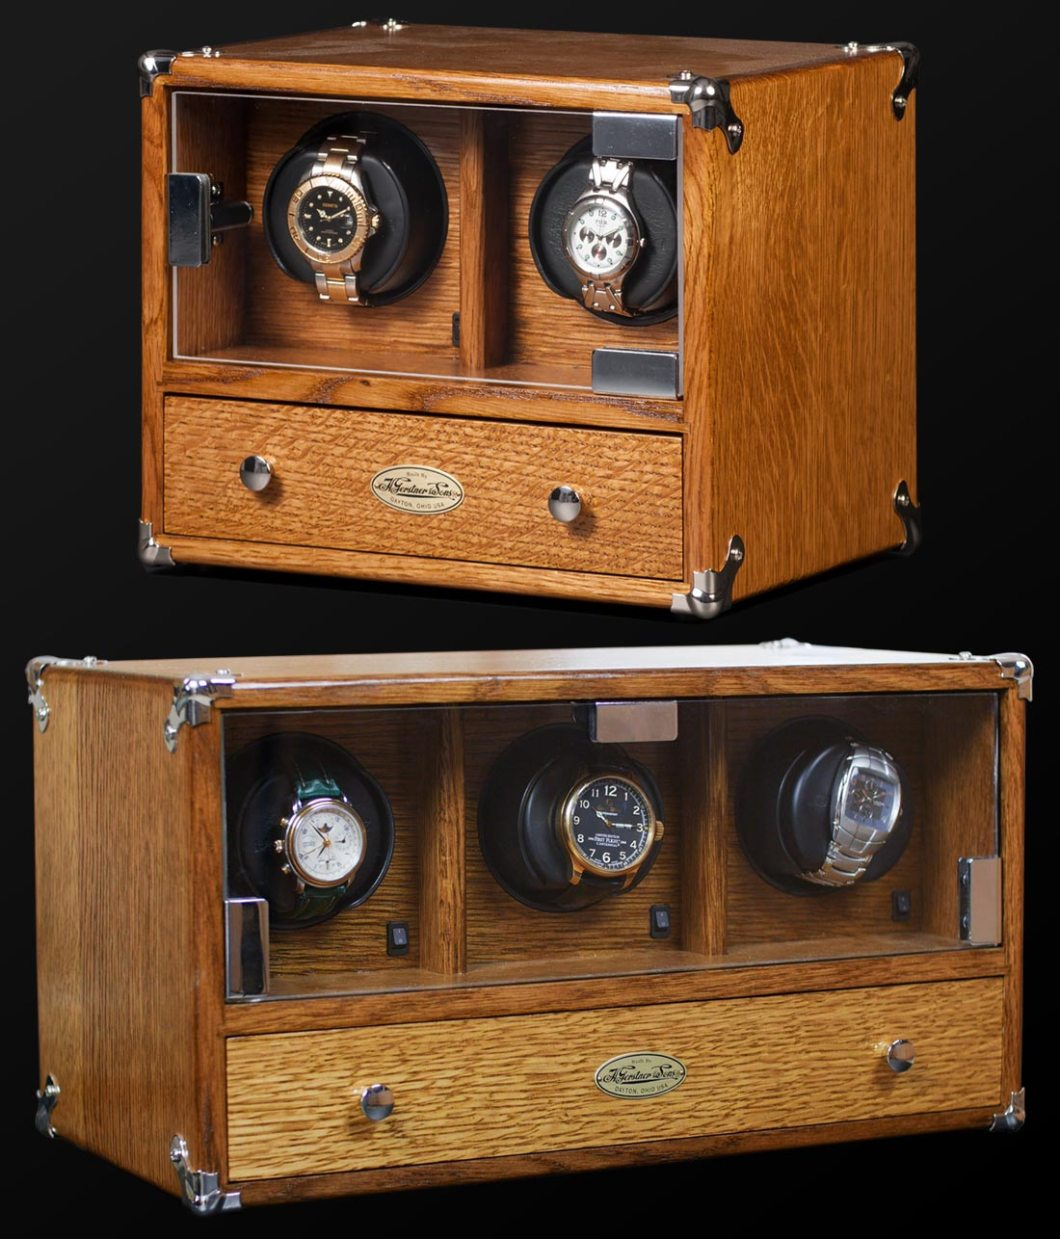 Orbita Gerstner Watch Winder Luxury Items